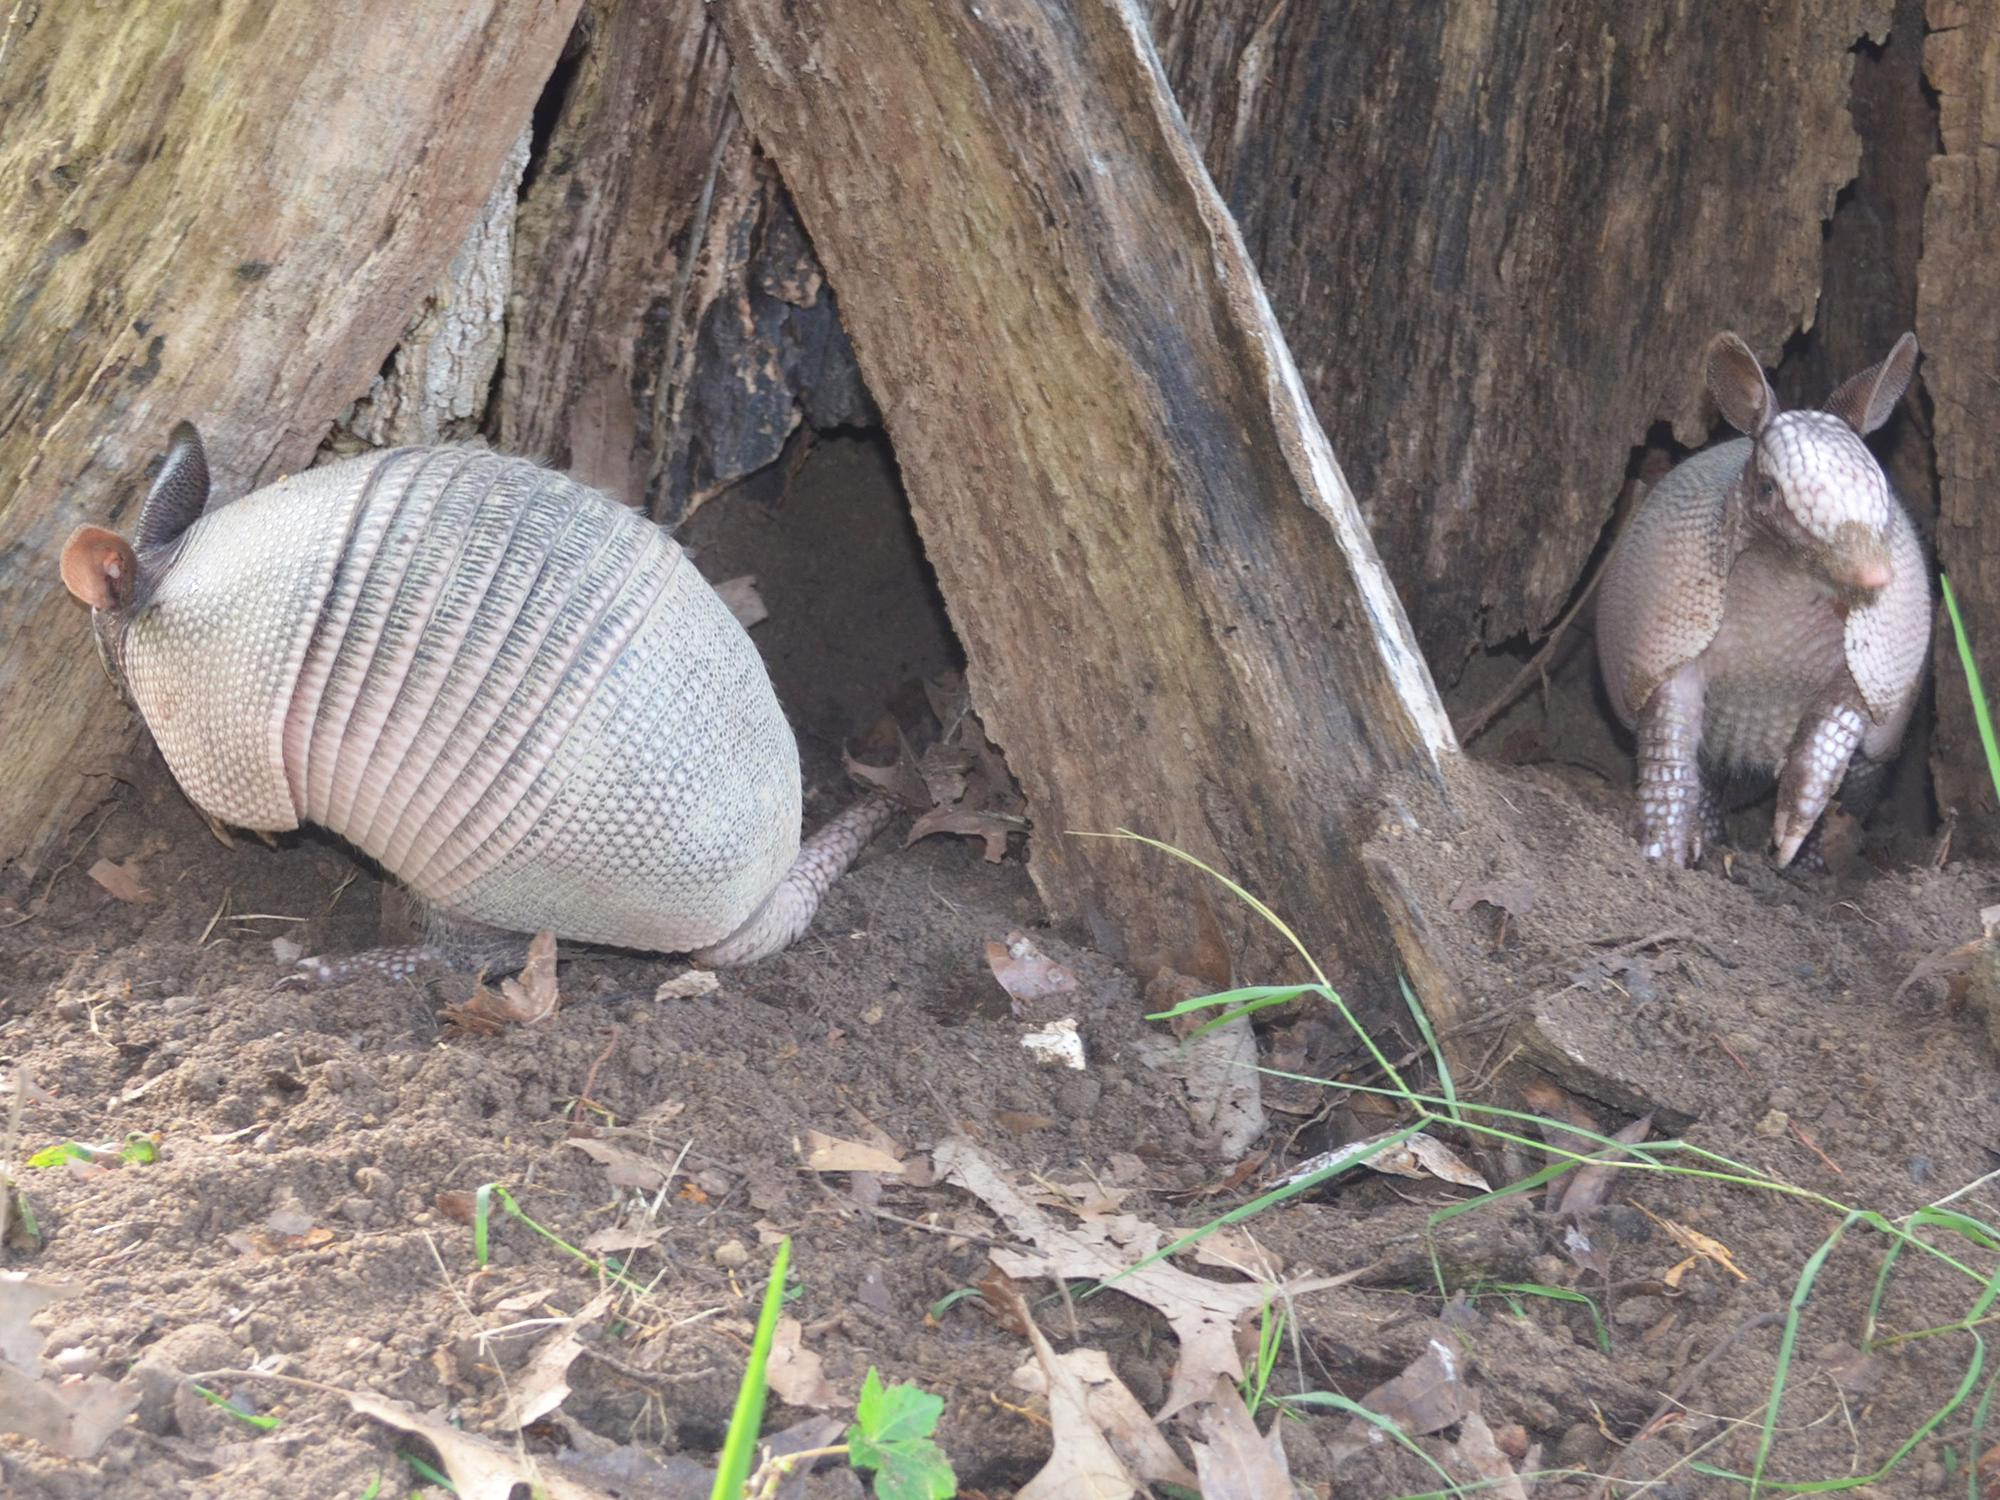 Armadillos dig up gardens in search of insects to eat but do not typically consume garden plants. (File photo by MSU Extension Service/Linda Breazeale)